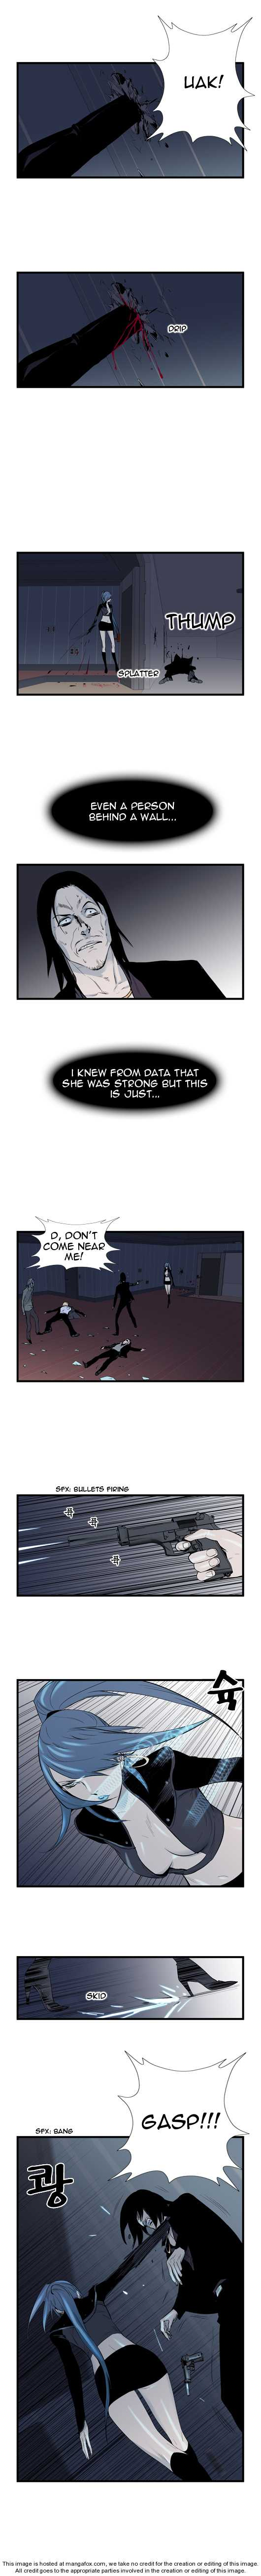 Noblesse 58 Page 5